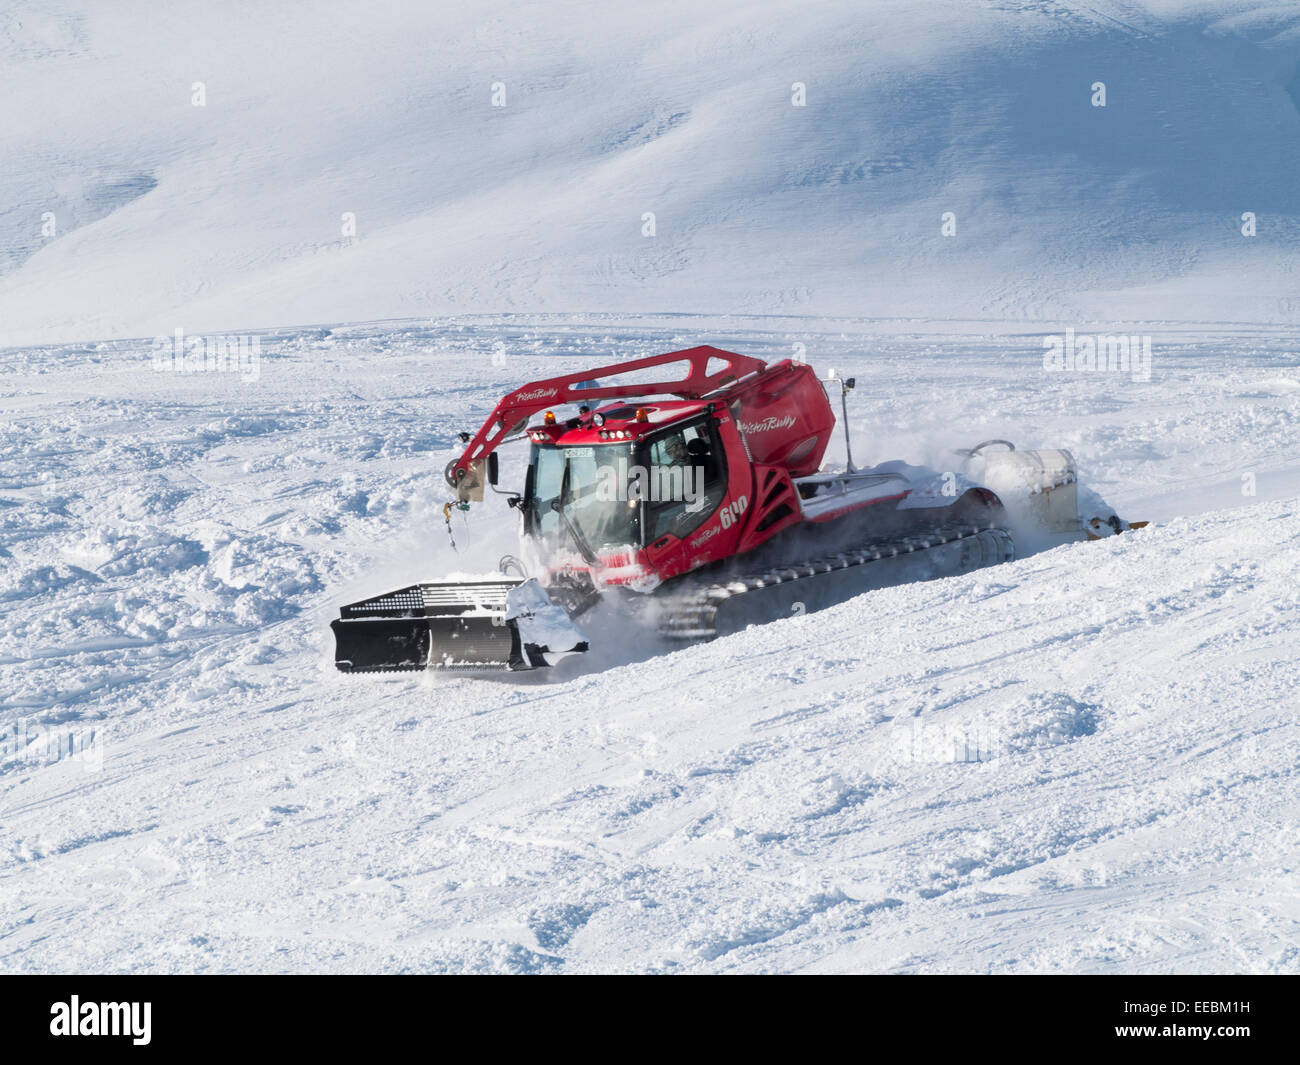 Snow basher or piste grooming bully caterpillar tracked vehicle moving quickly on ski slopes. St Anton am Arlberg - Stock Image